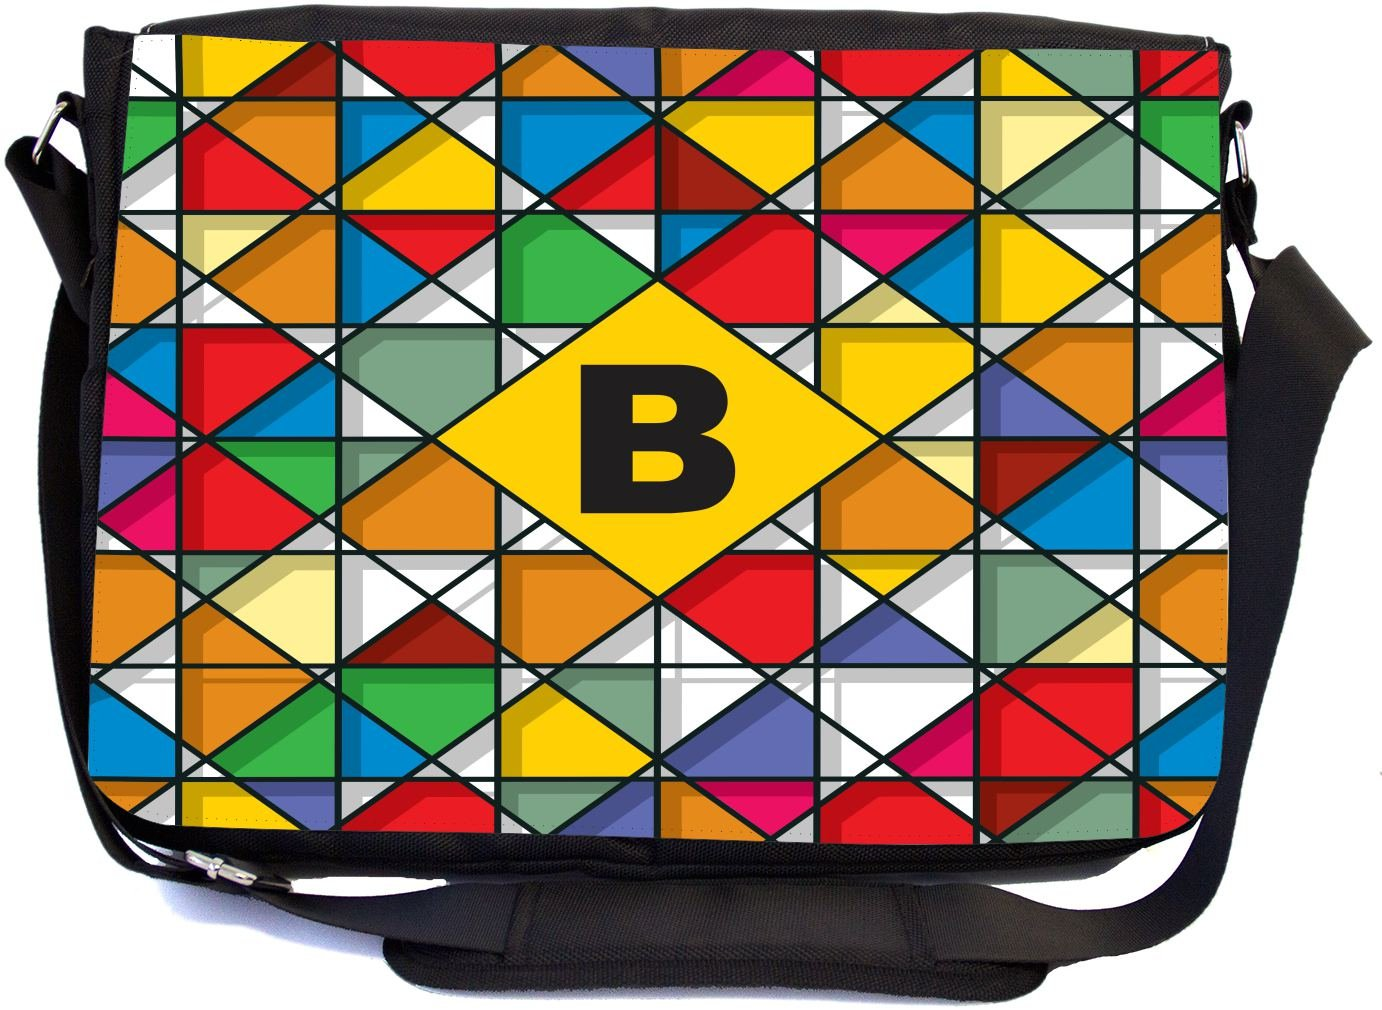 Rikki Knight Letter B Monogram Vibrant Colors Stained Glass Design Design Combo Multifunction Messenger Laptop Bag - with Padded Insert for School or Work - Includes Wristlet & Mirror